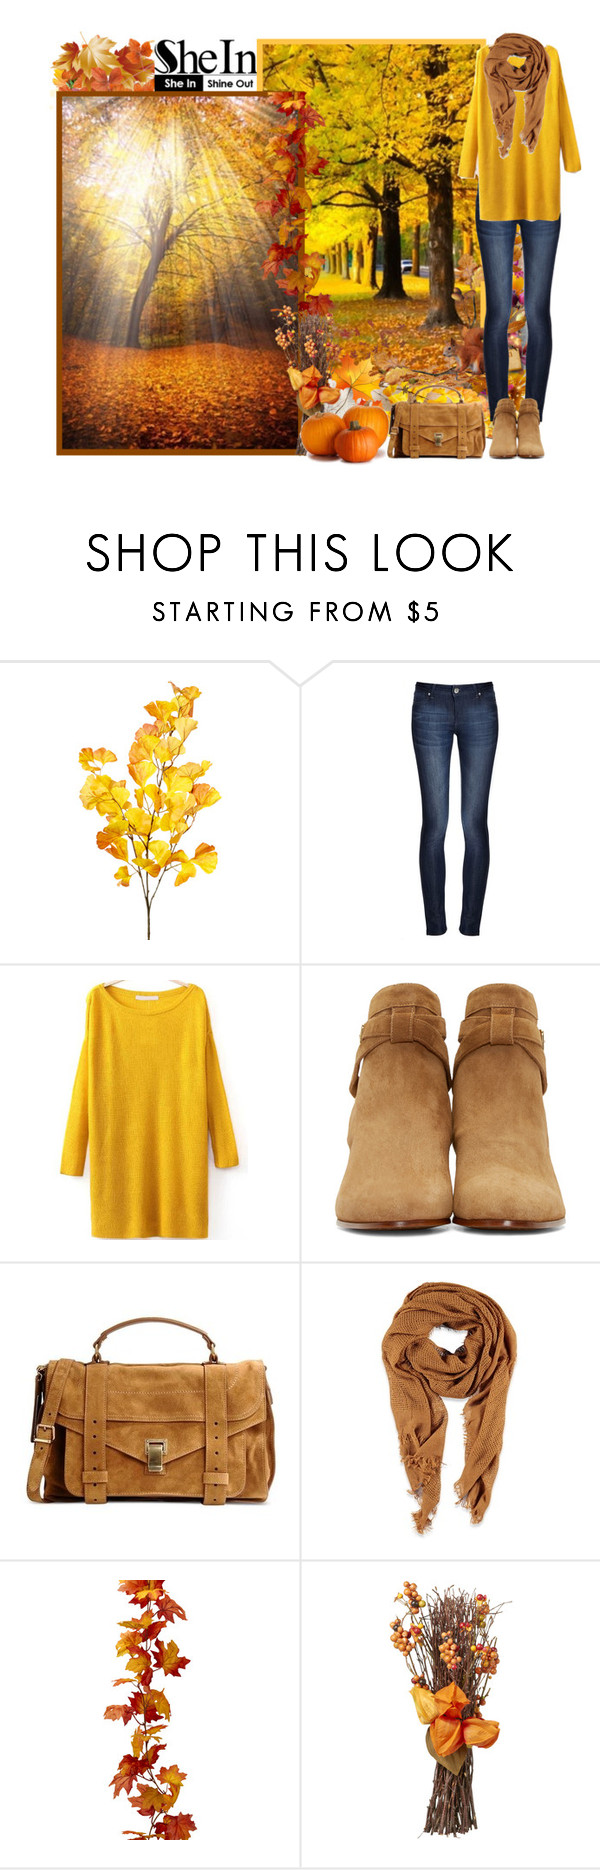 """SheIn.com - Contest!"" by asia-12 ❤ liked on Polyvore featuring DL1961 Premium Denim, Yves Saint Laurent, Proenza Schouler, Forever 21, women's clothing, women's fashion, women, female, woman and misses"